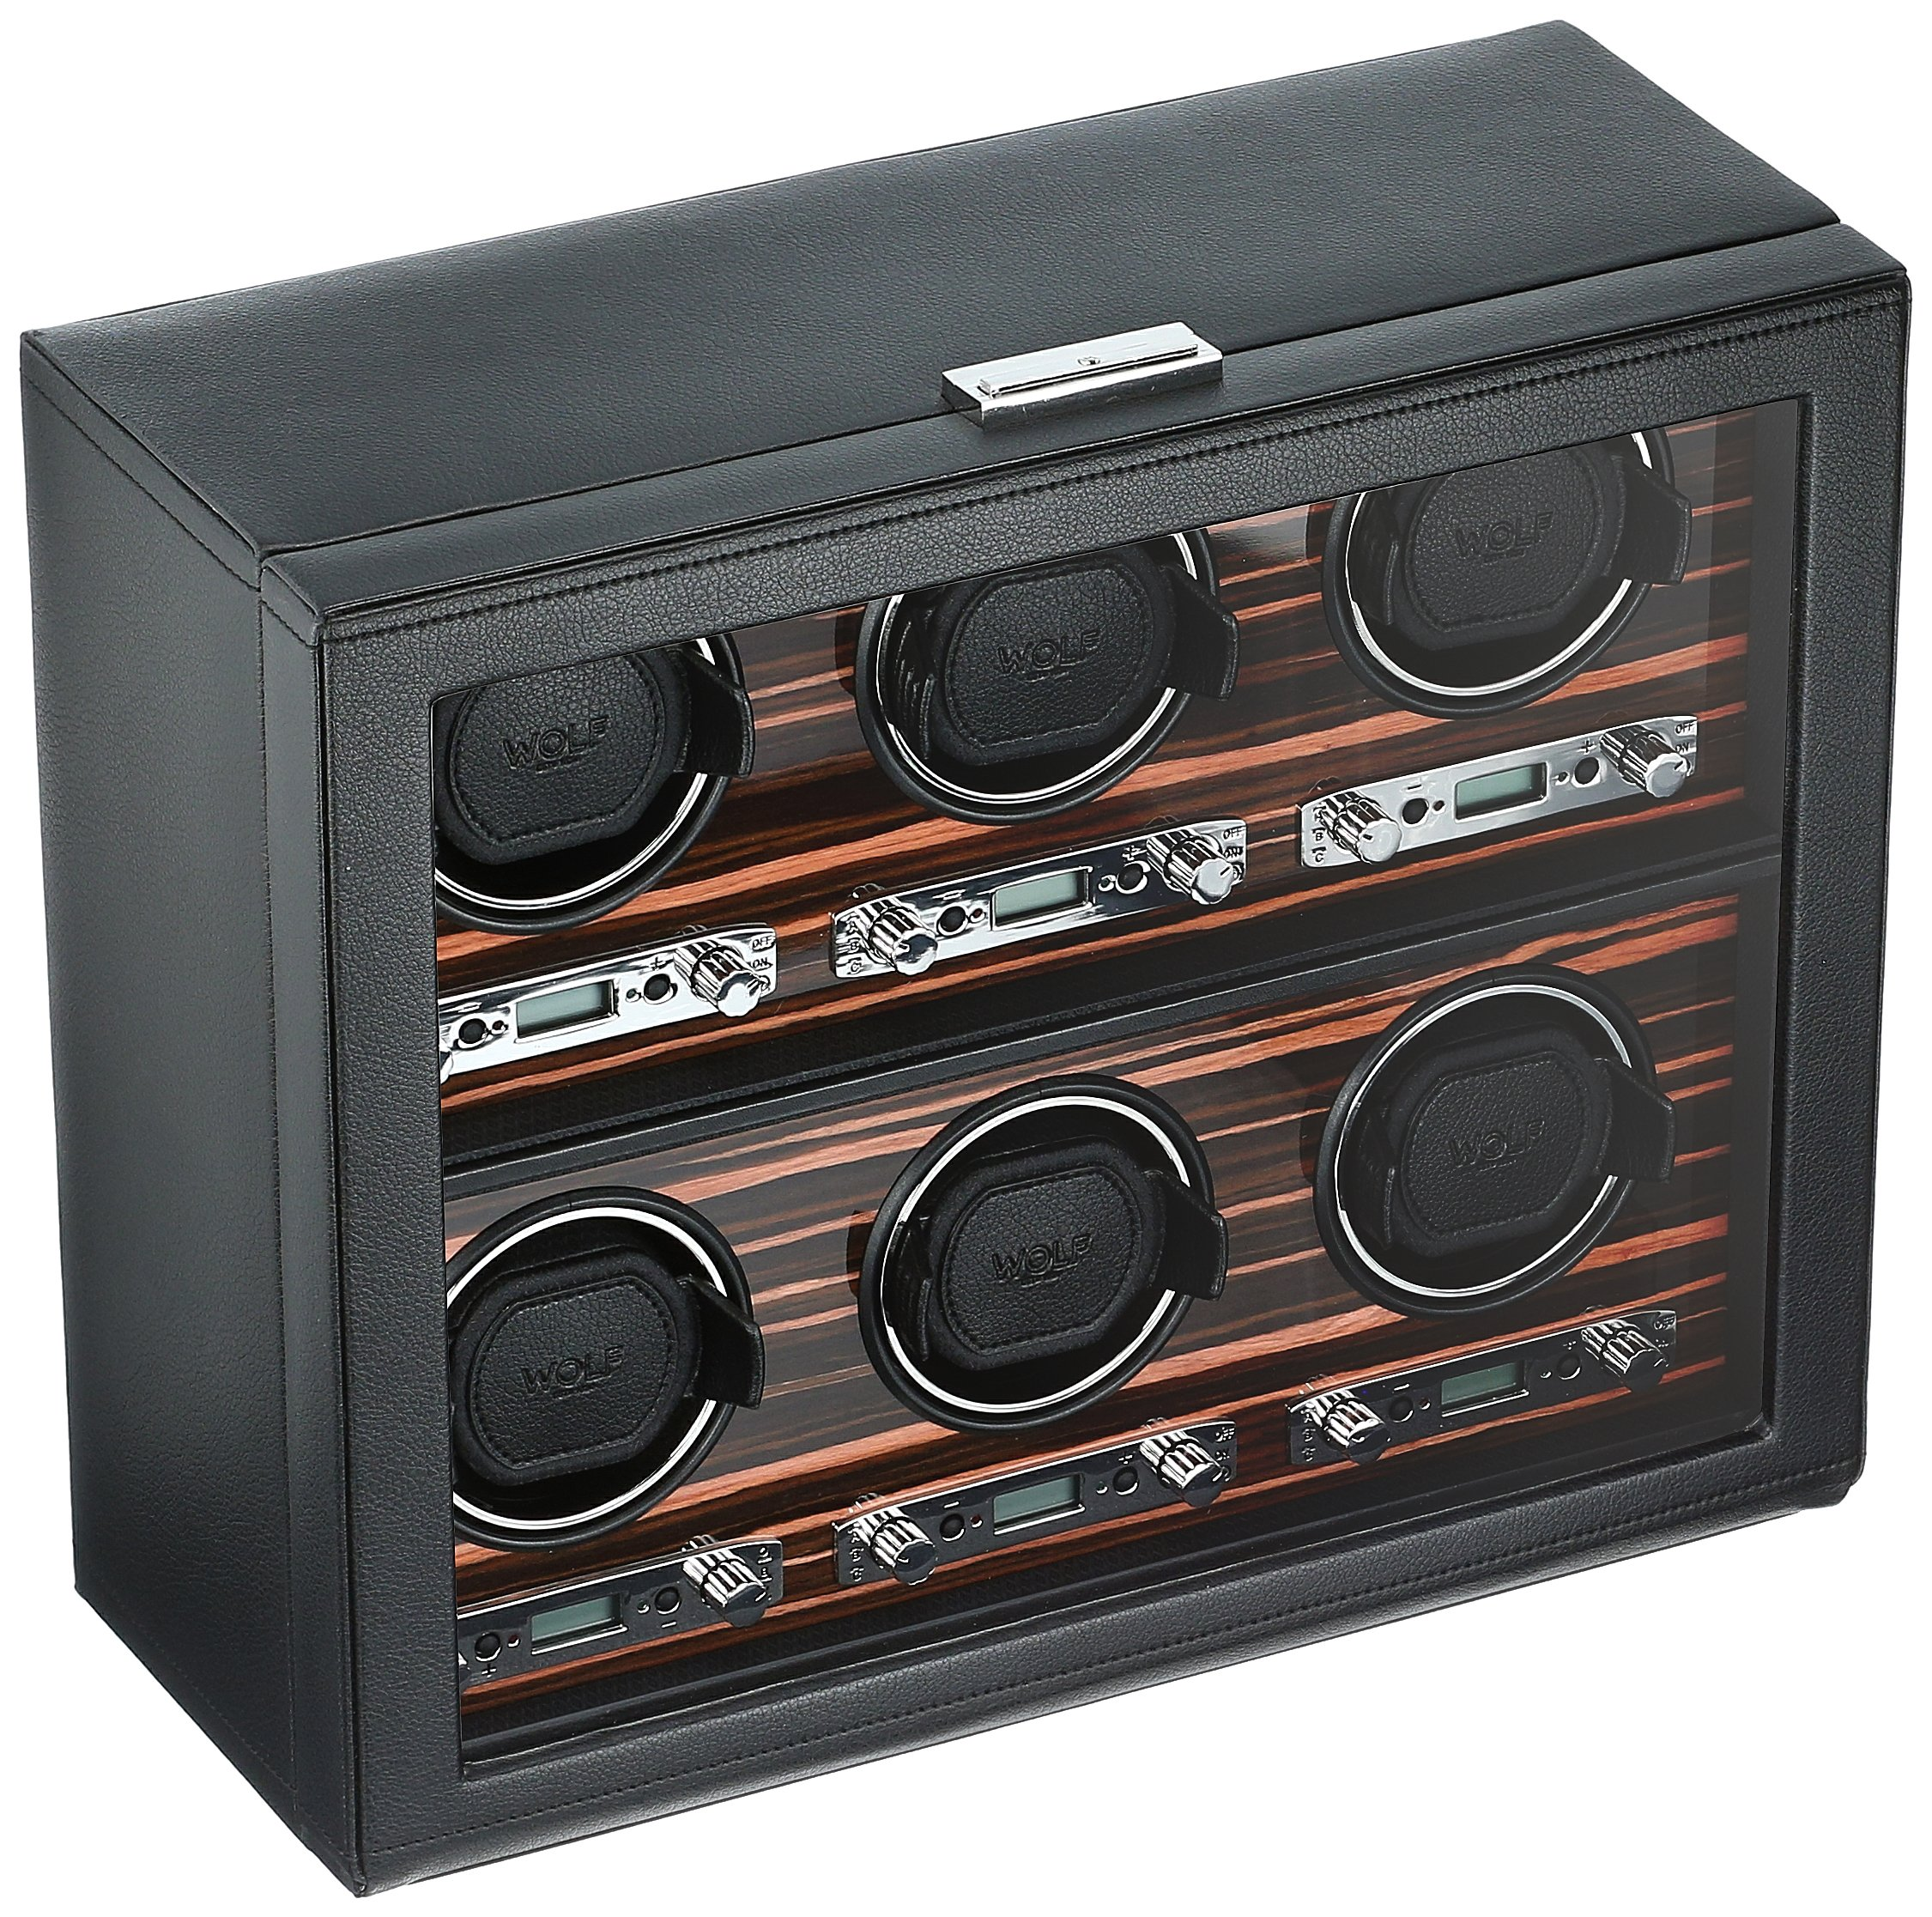 WOLF 459256 Roadster 6 Piece Watch Winder with Cover, Black by WOLF